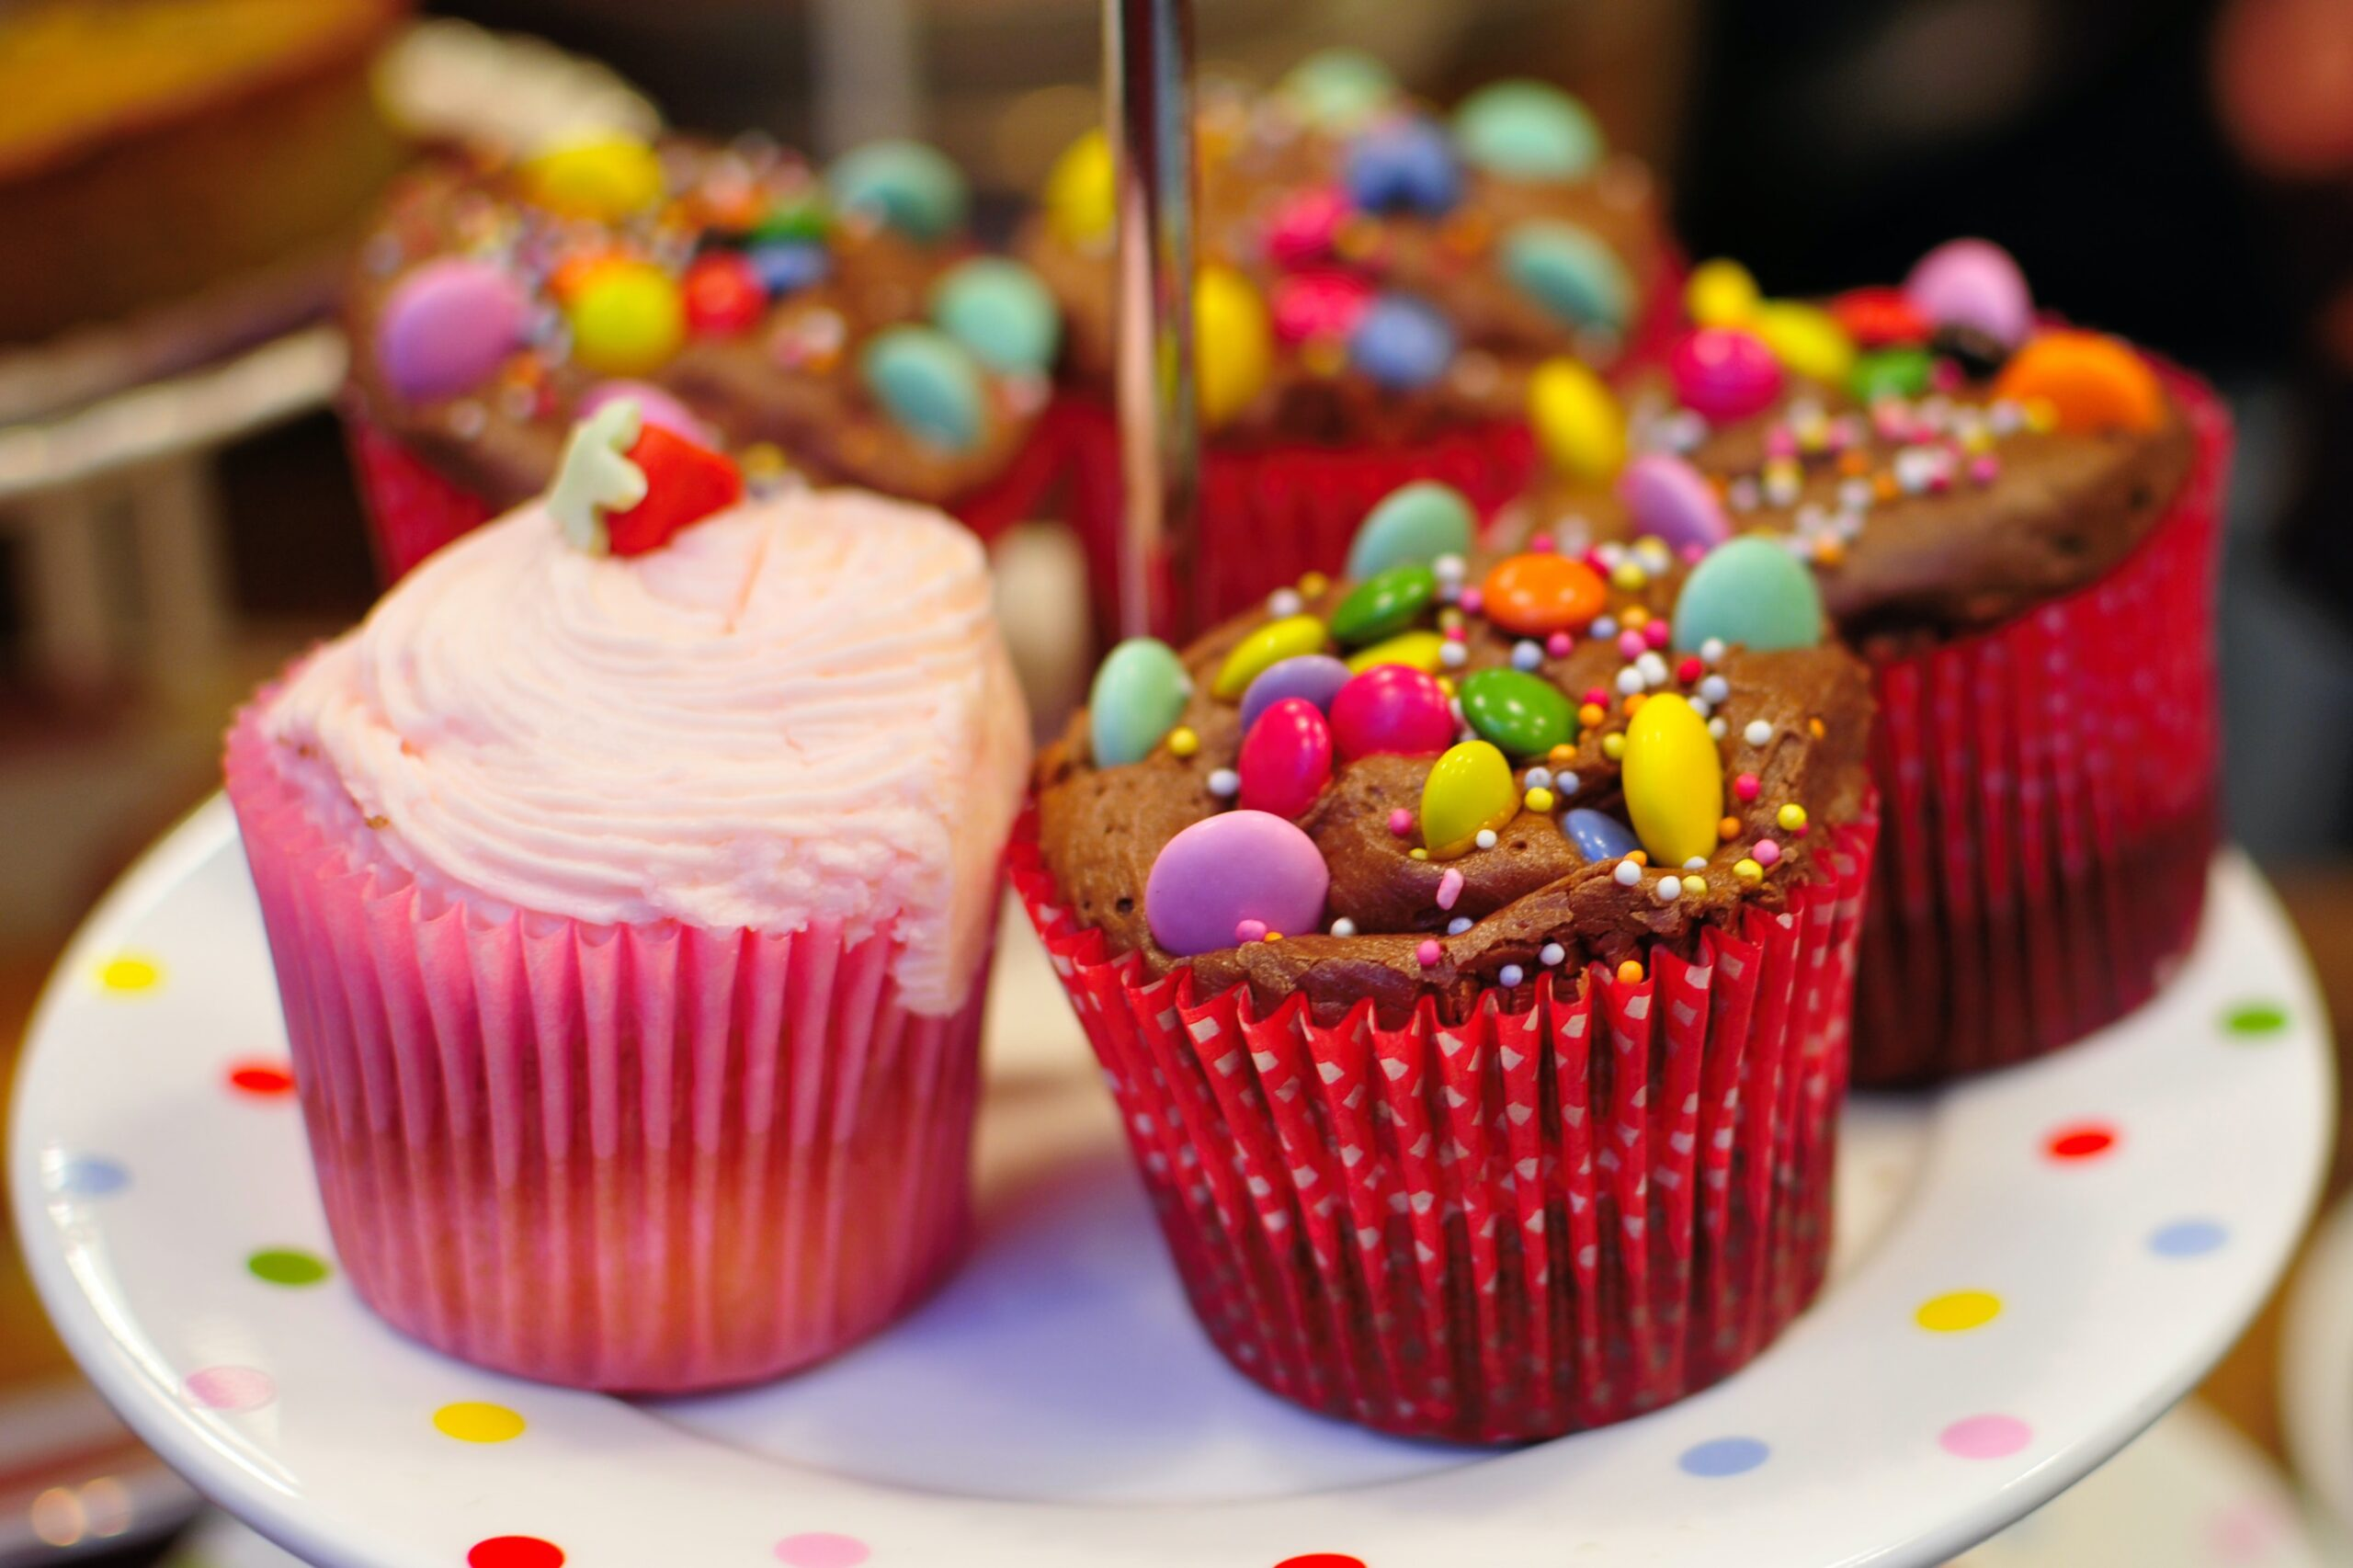 New-US-dietary-guidelines-No-candy-cake